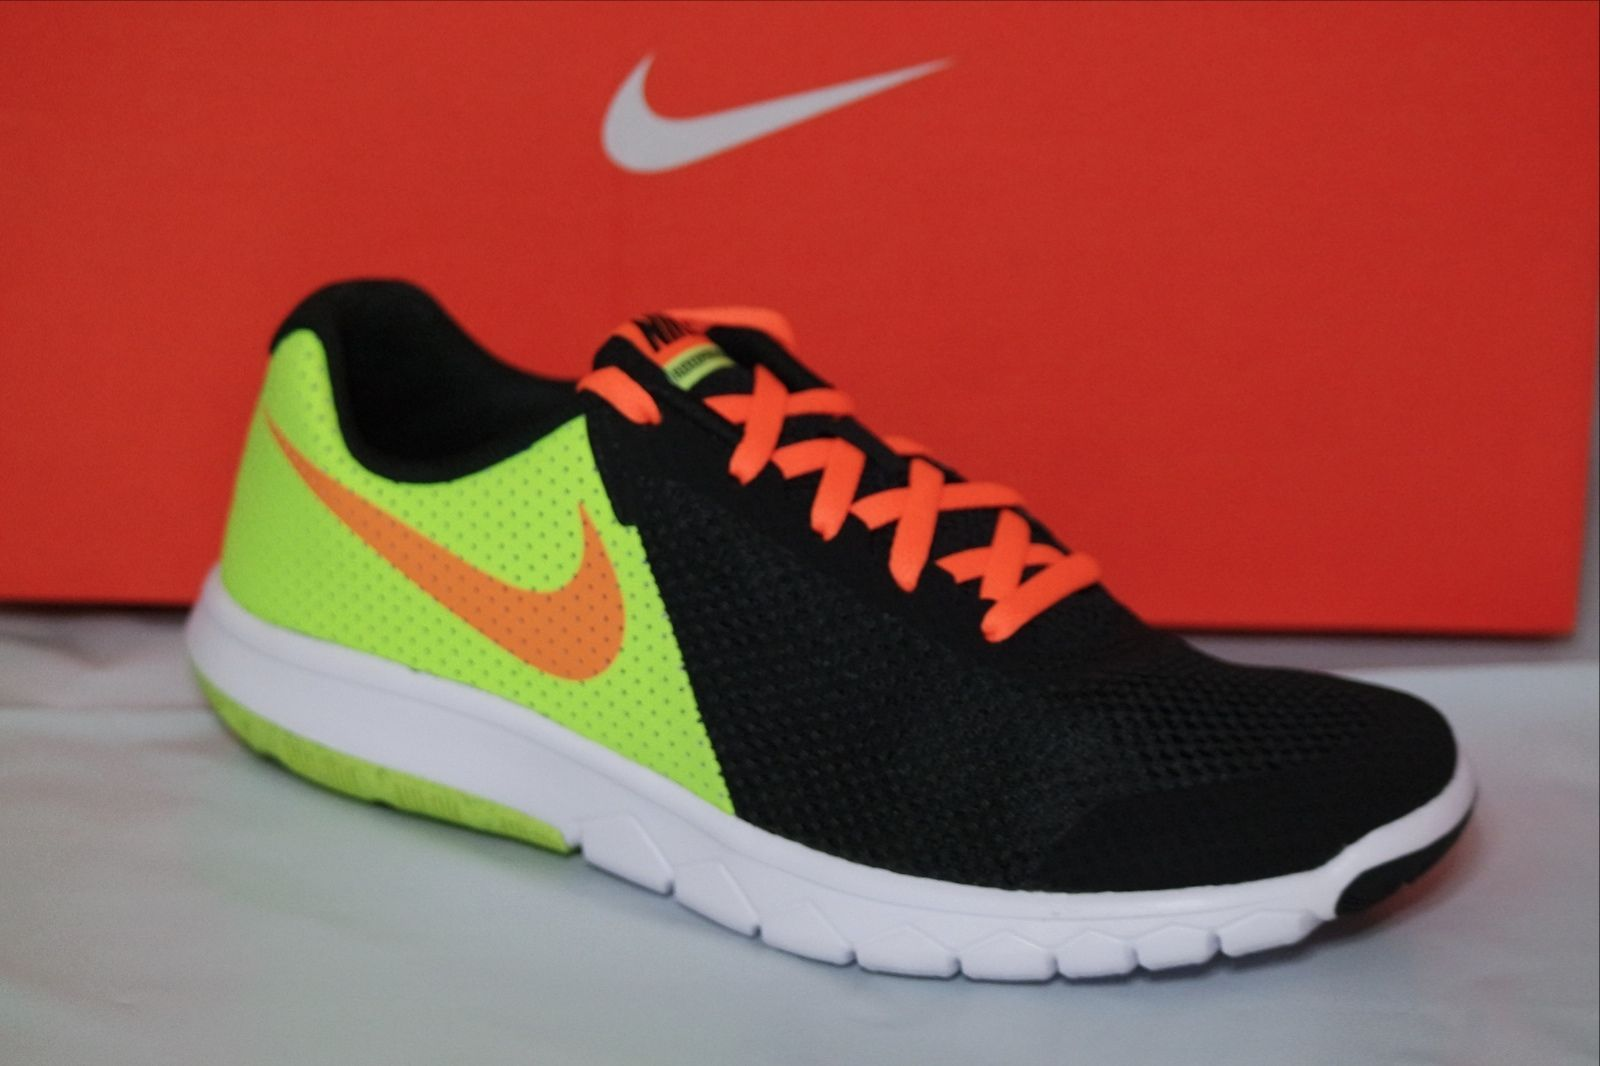 new style 68fa7 232c0 Nike Flex Experience 5 (Gs) Kid Shoe, Size and 50 similar items. S l1600